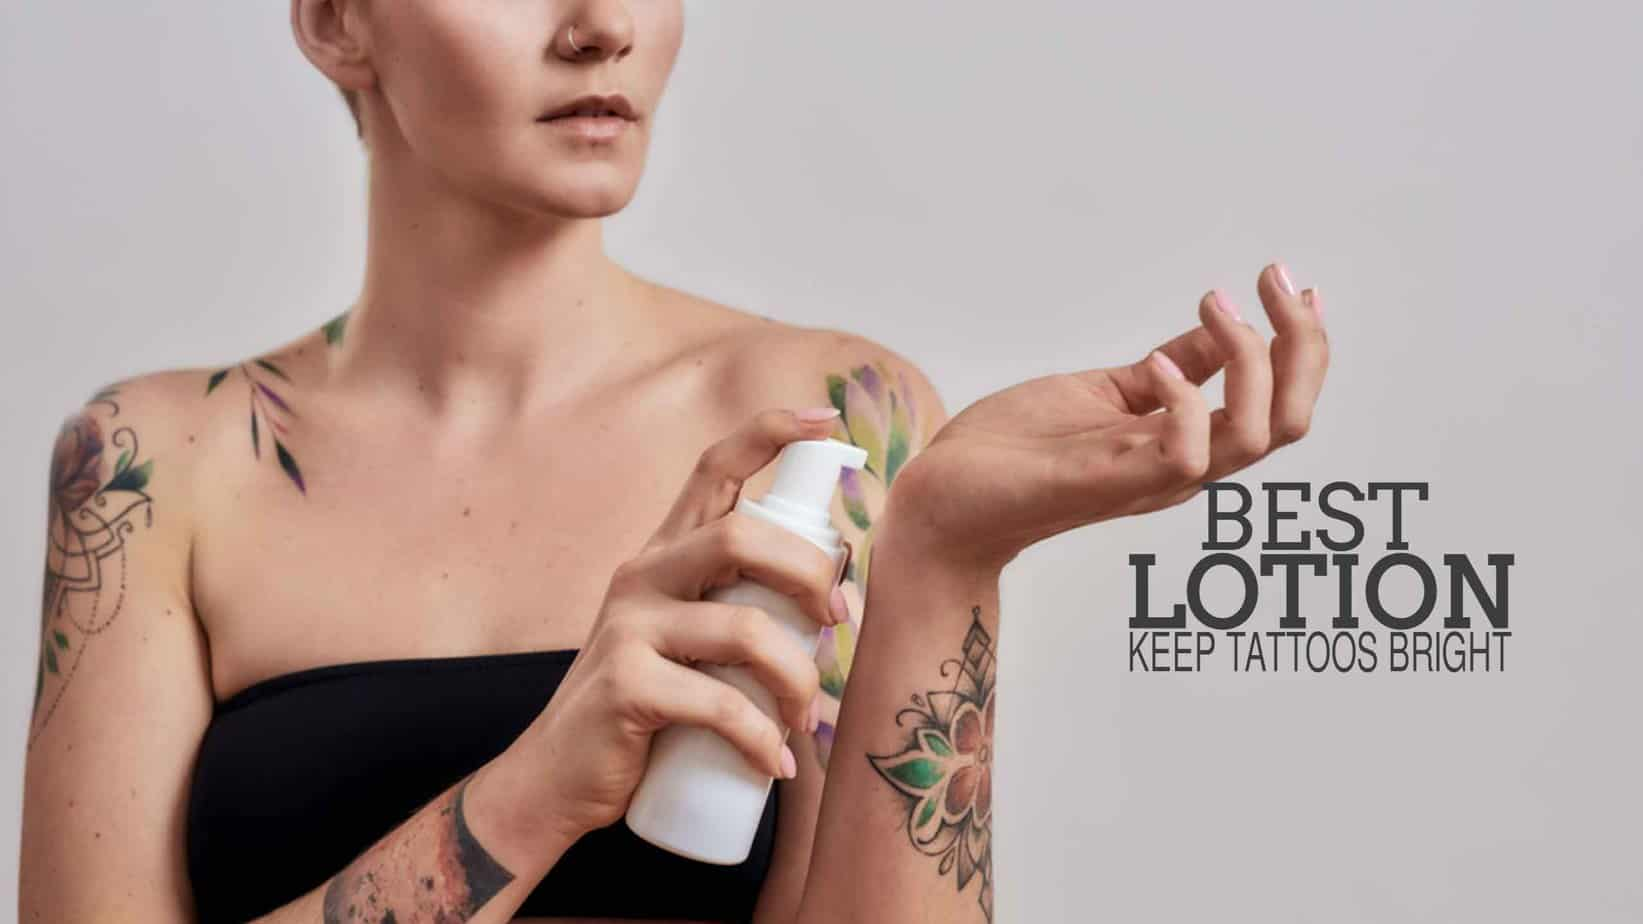 Best Lotion to Keep Tattoos Bright